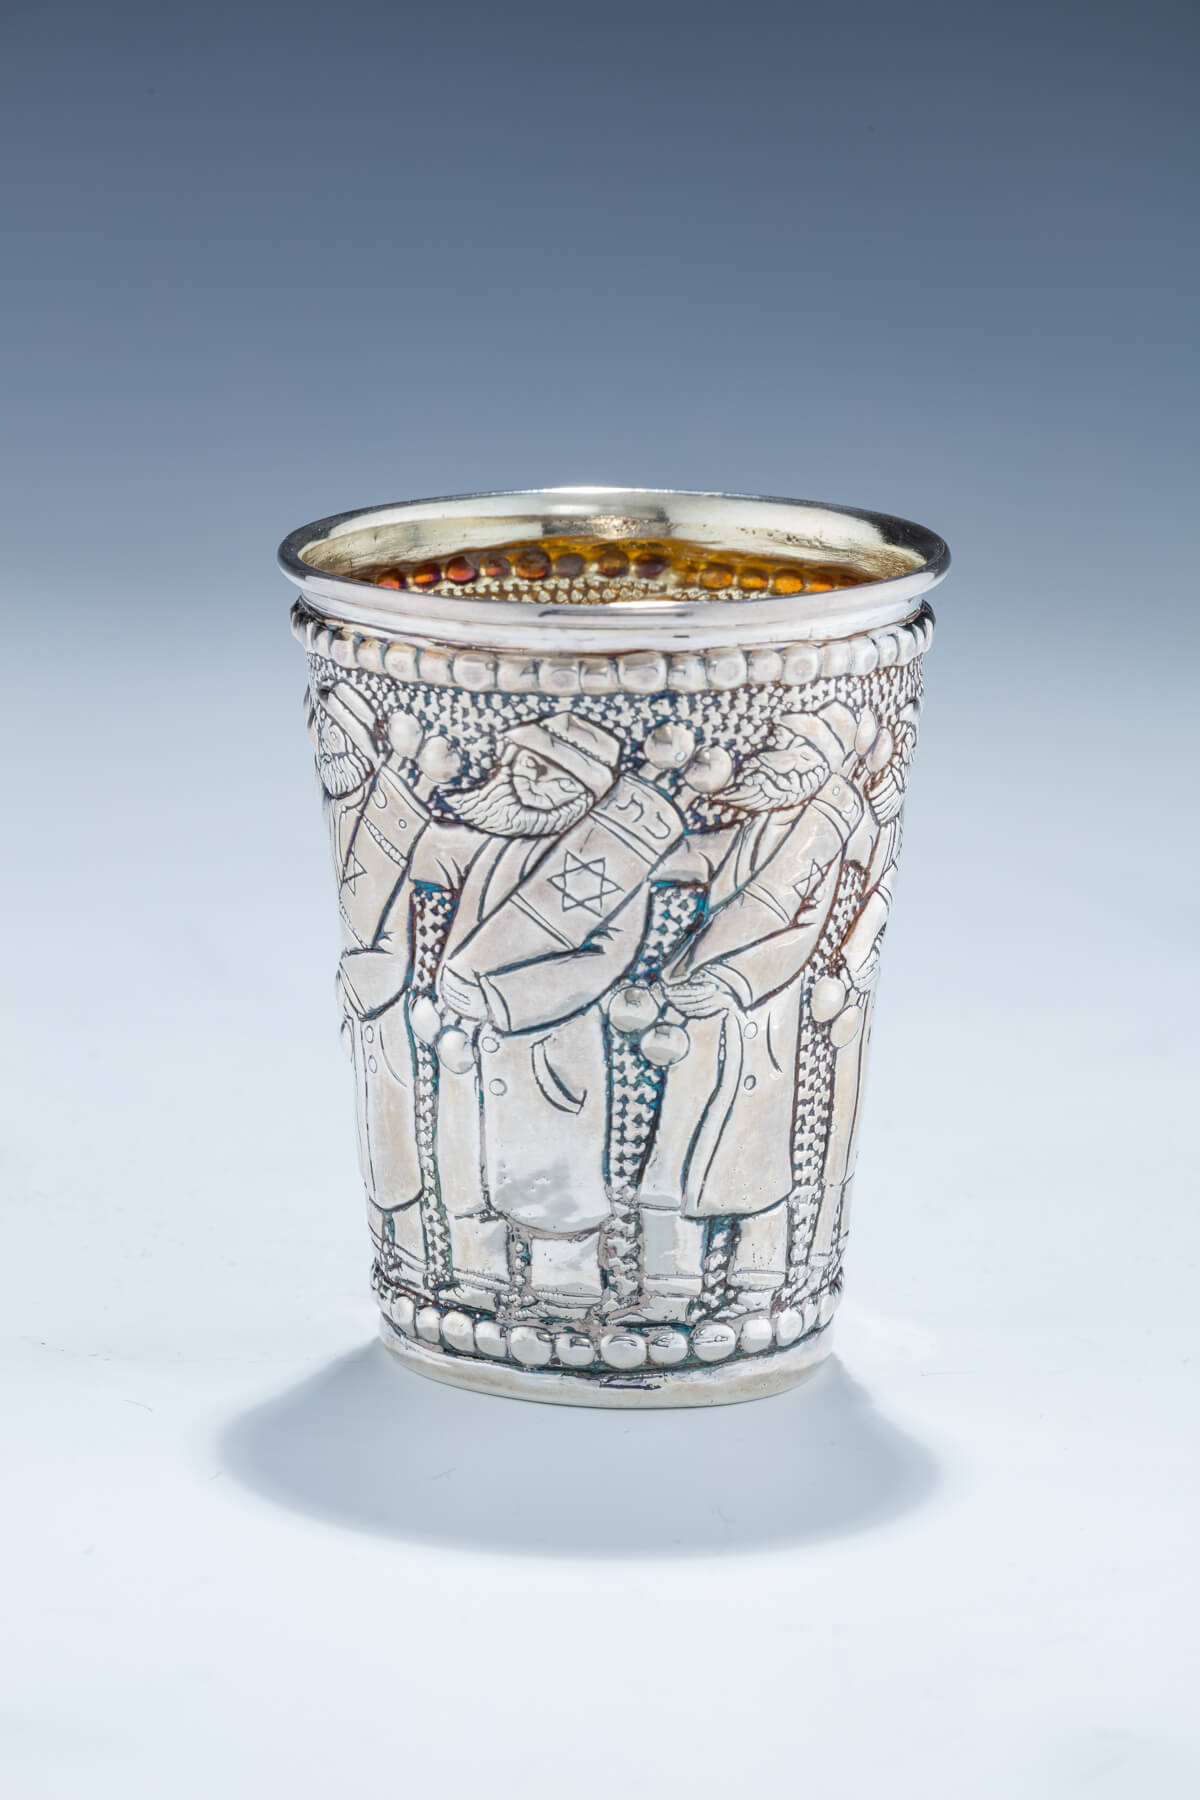 132. A Sterling Silver Kiddush Beaker by Michael Ende